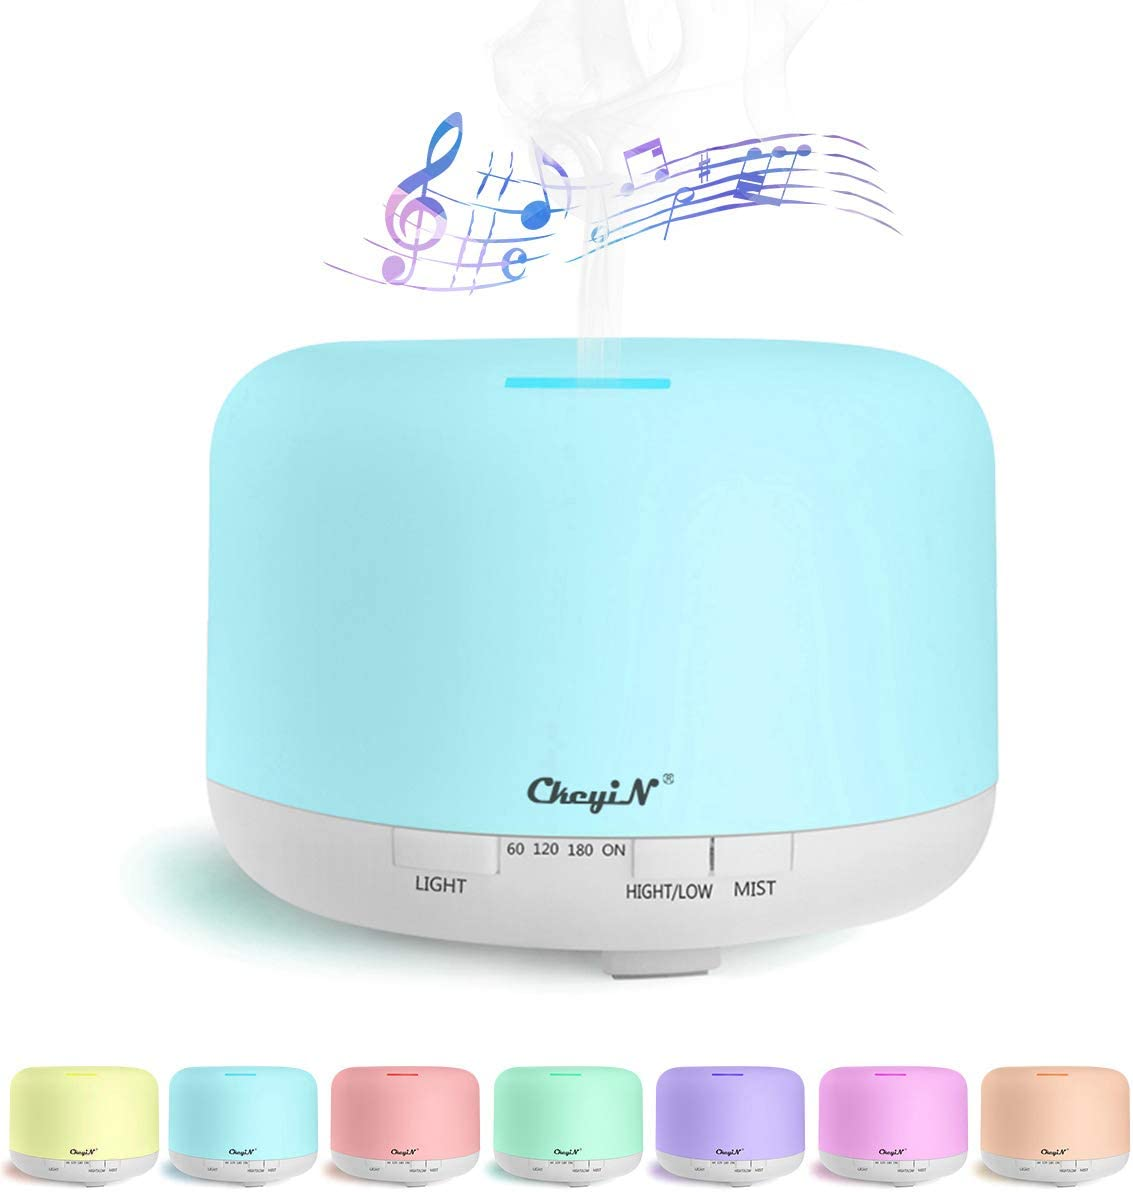 CkeyiN 800ml Large Essential Oil Diffuser, Cool Mist Humidifier Aromatherapy Diffuser with Bluetooth Speaker, Waterless Auto Shut-Off and 3 Timer Settings - for Yoga, Spa, Bedroom, Home, Office